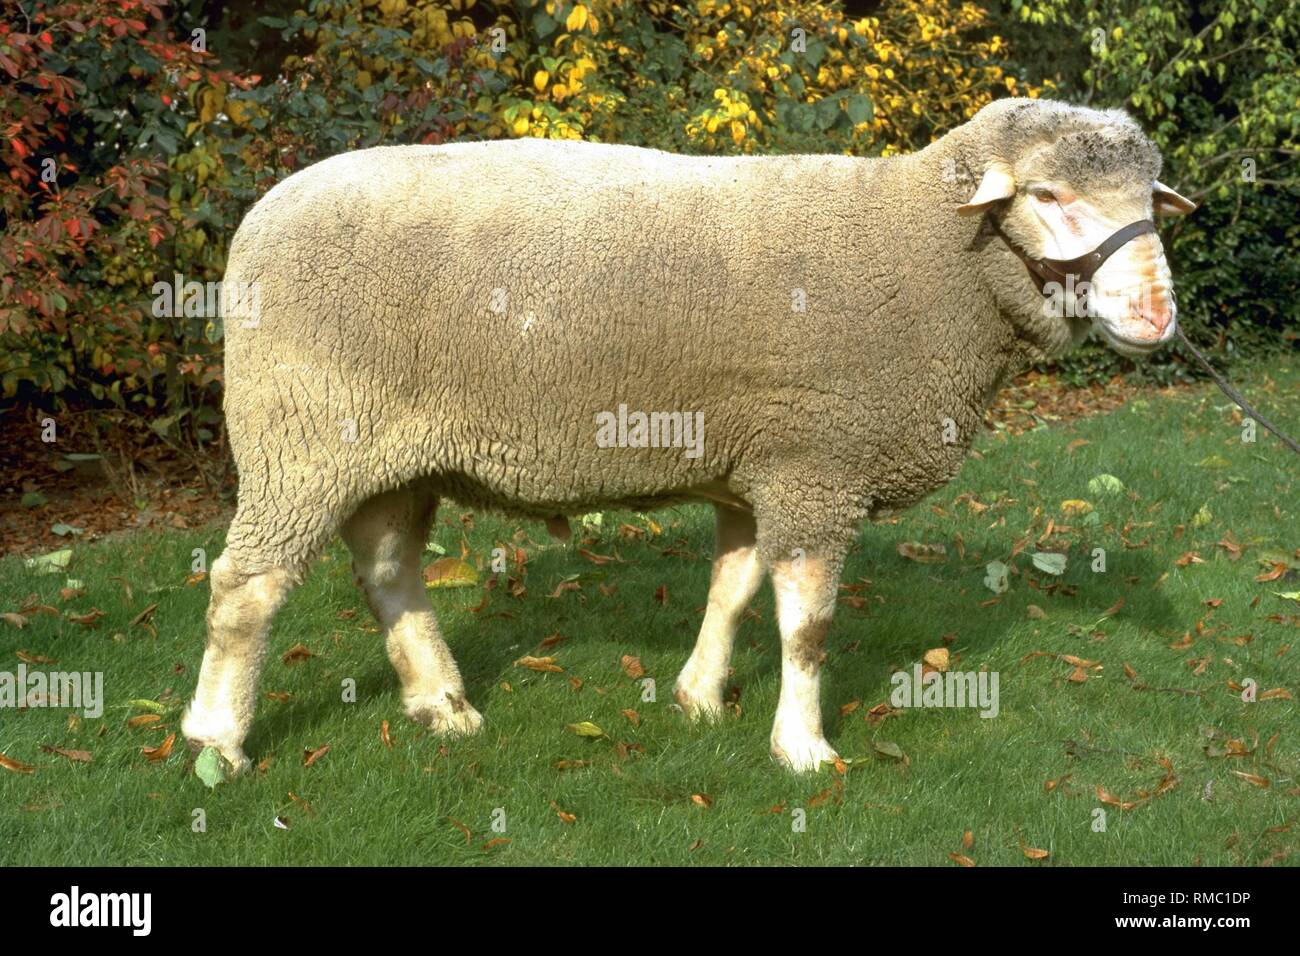 The Merino meat sheep is a medium-sized sheep with good